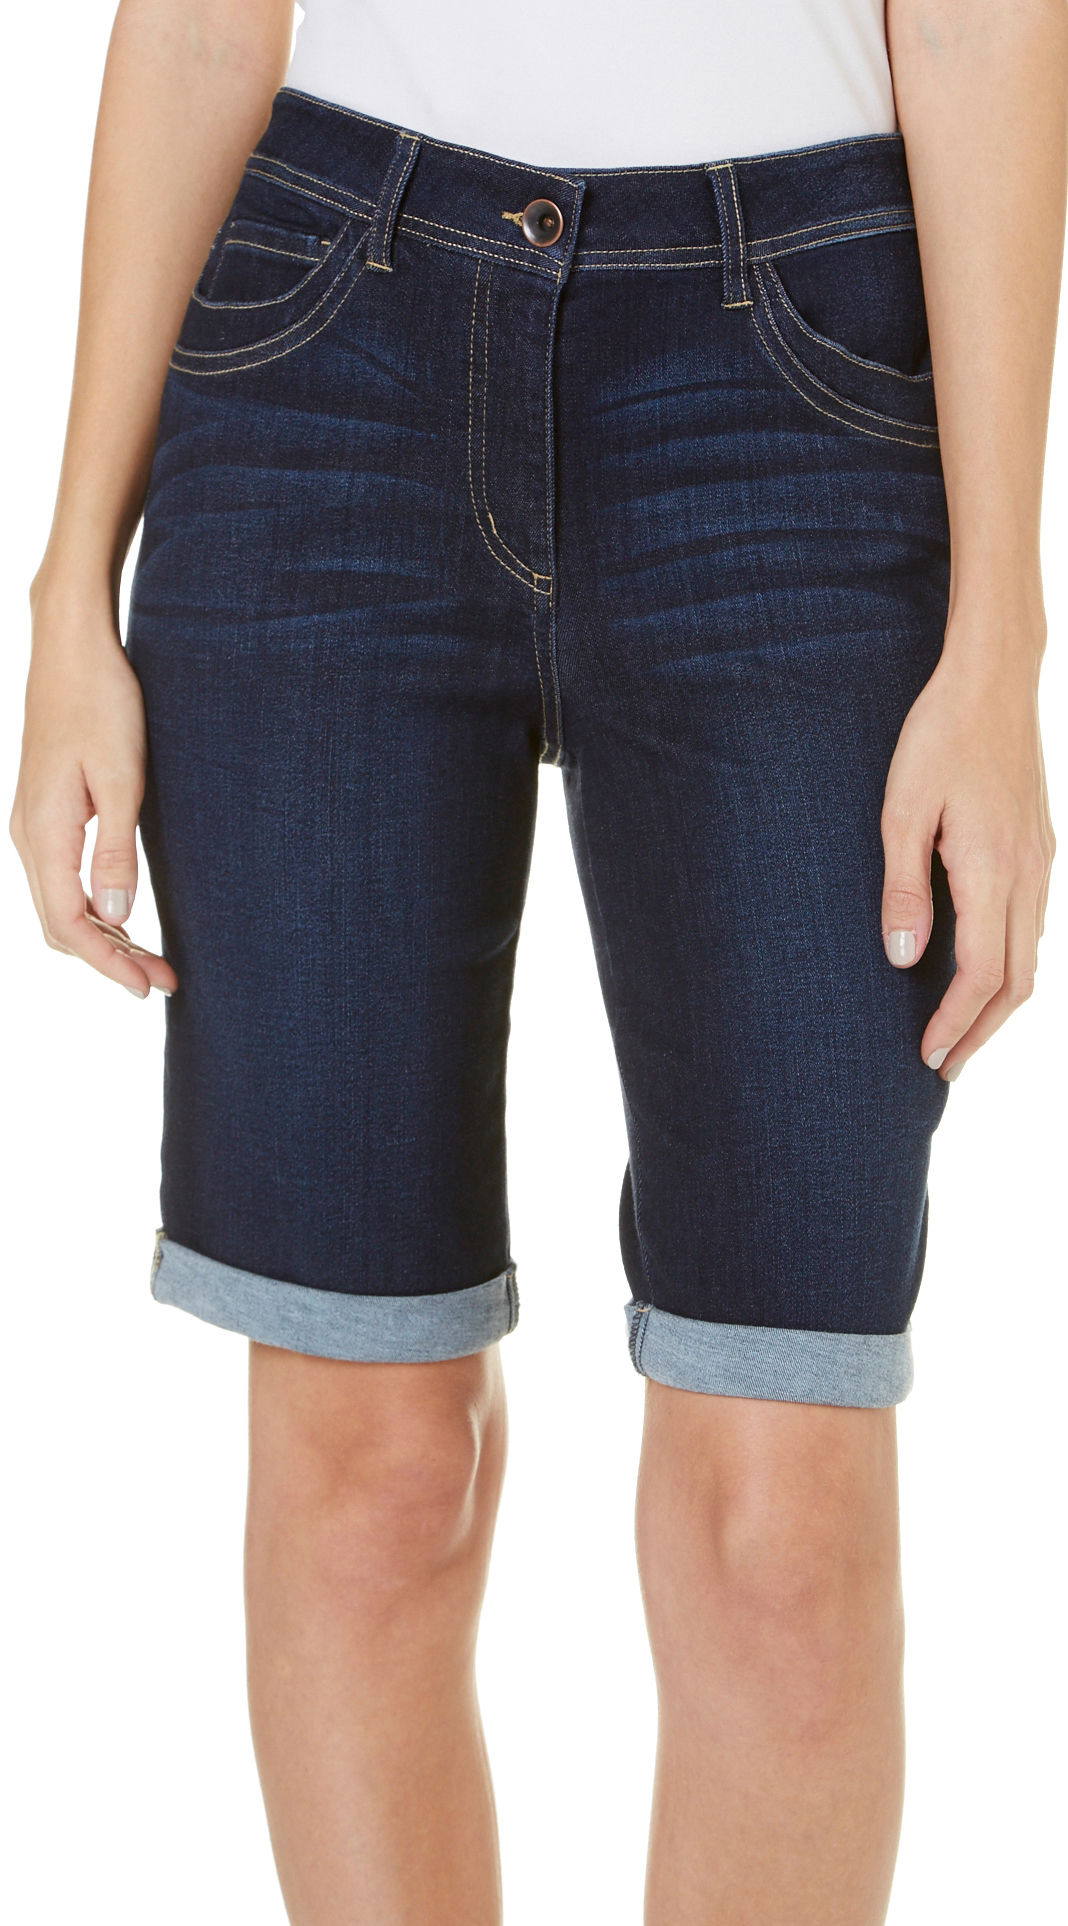 Women's Bermuda Shorts. Women's Bermuda shorts are a wonderful option for staying cool during the summer. You get to show some leg without having to deal with short shorts, and a variety of fits and styles ensures you find the right shorts for your body type.